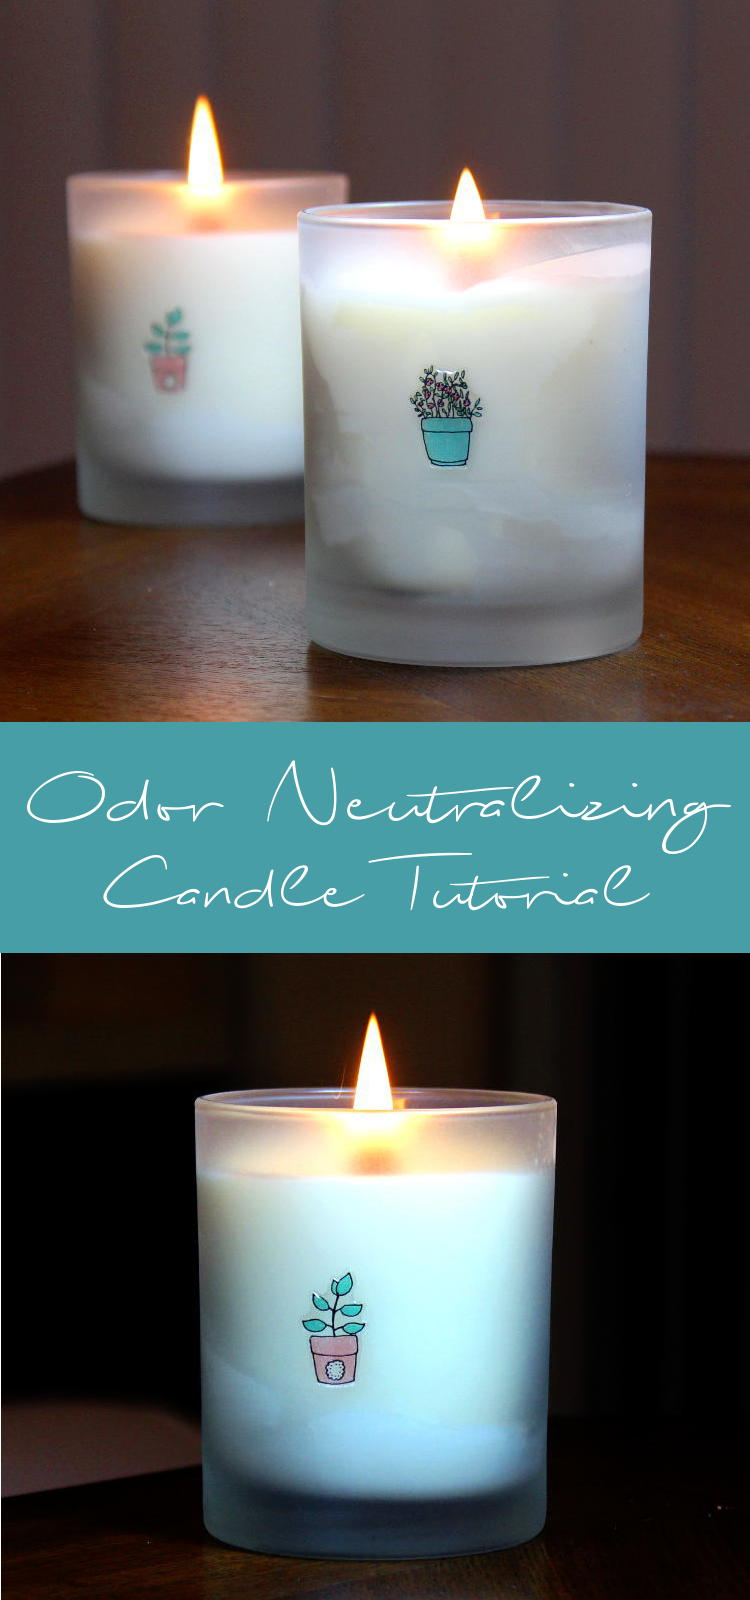 Odor Neutralizing Candle Diy Create Custom Scented Candles